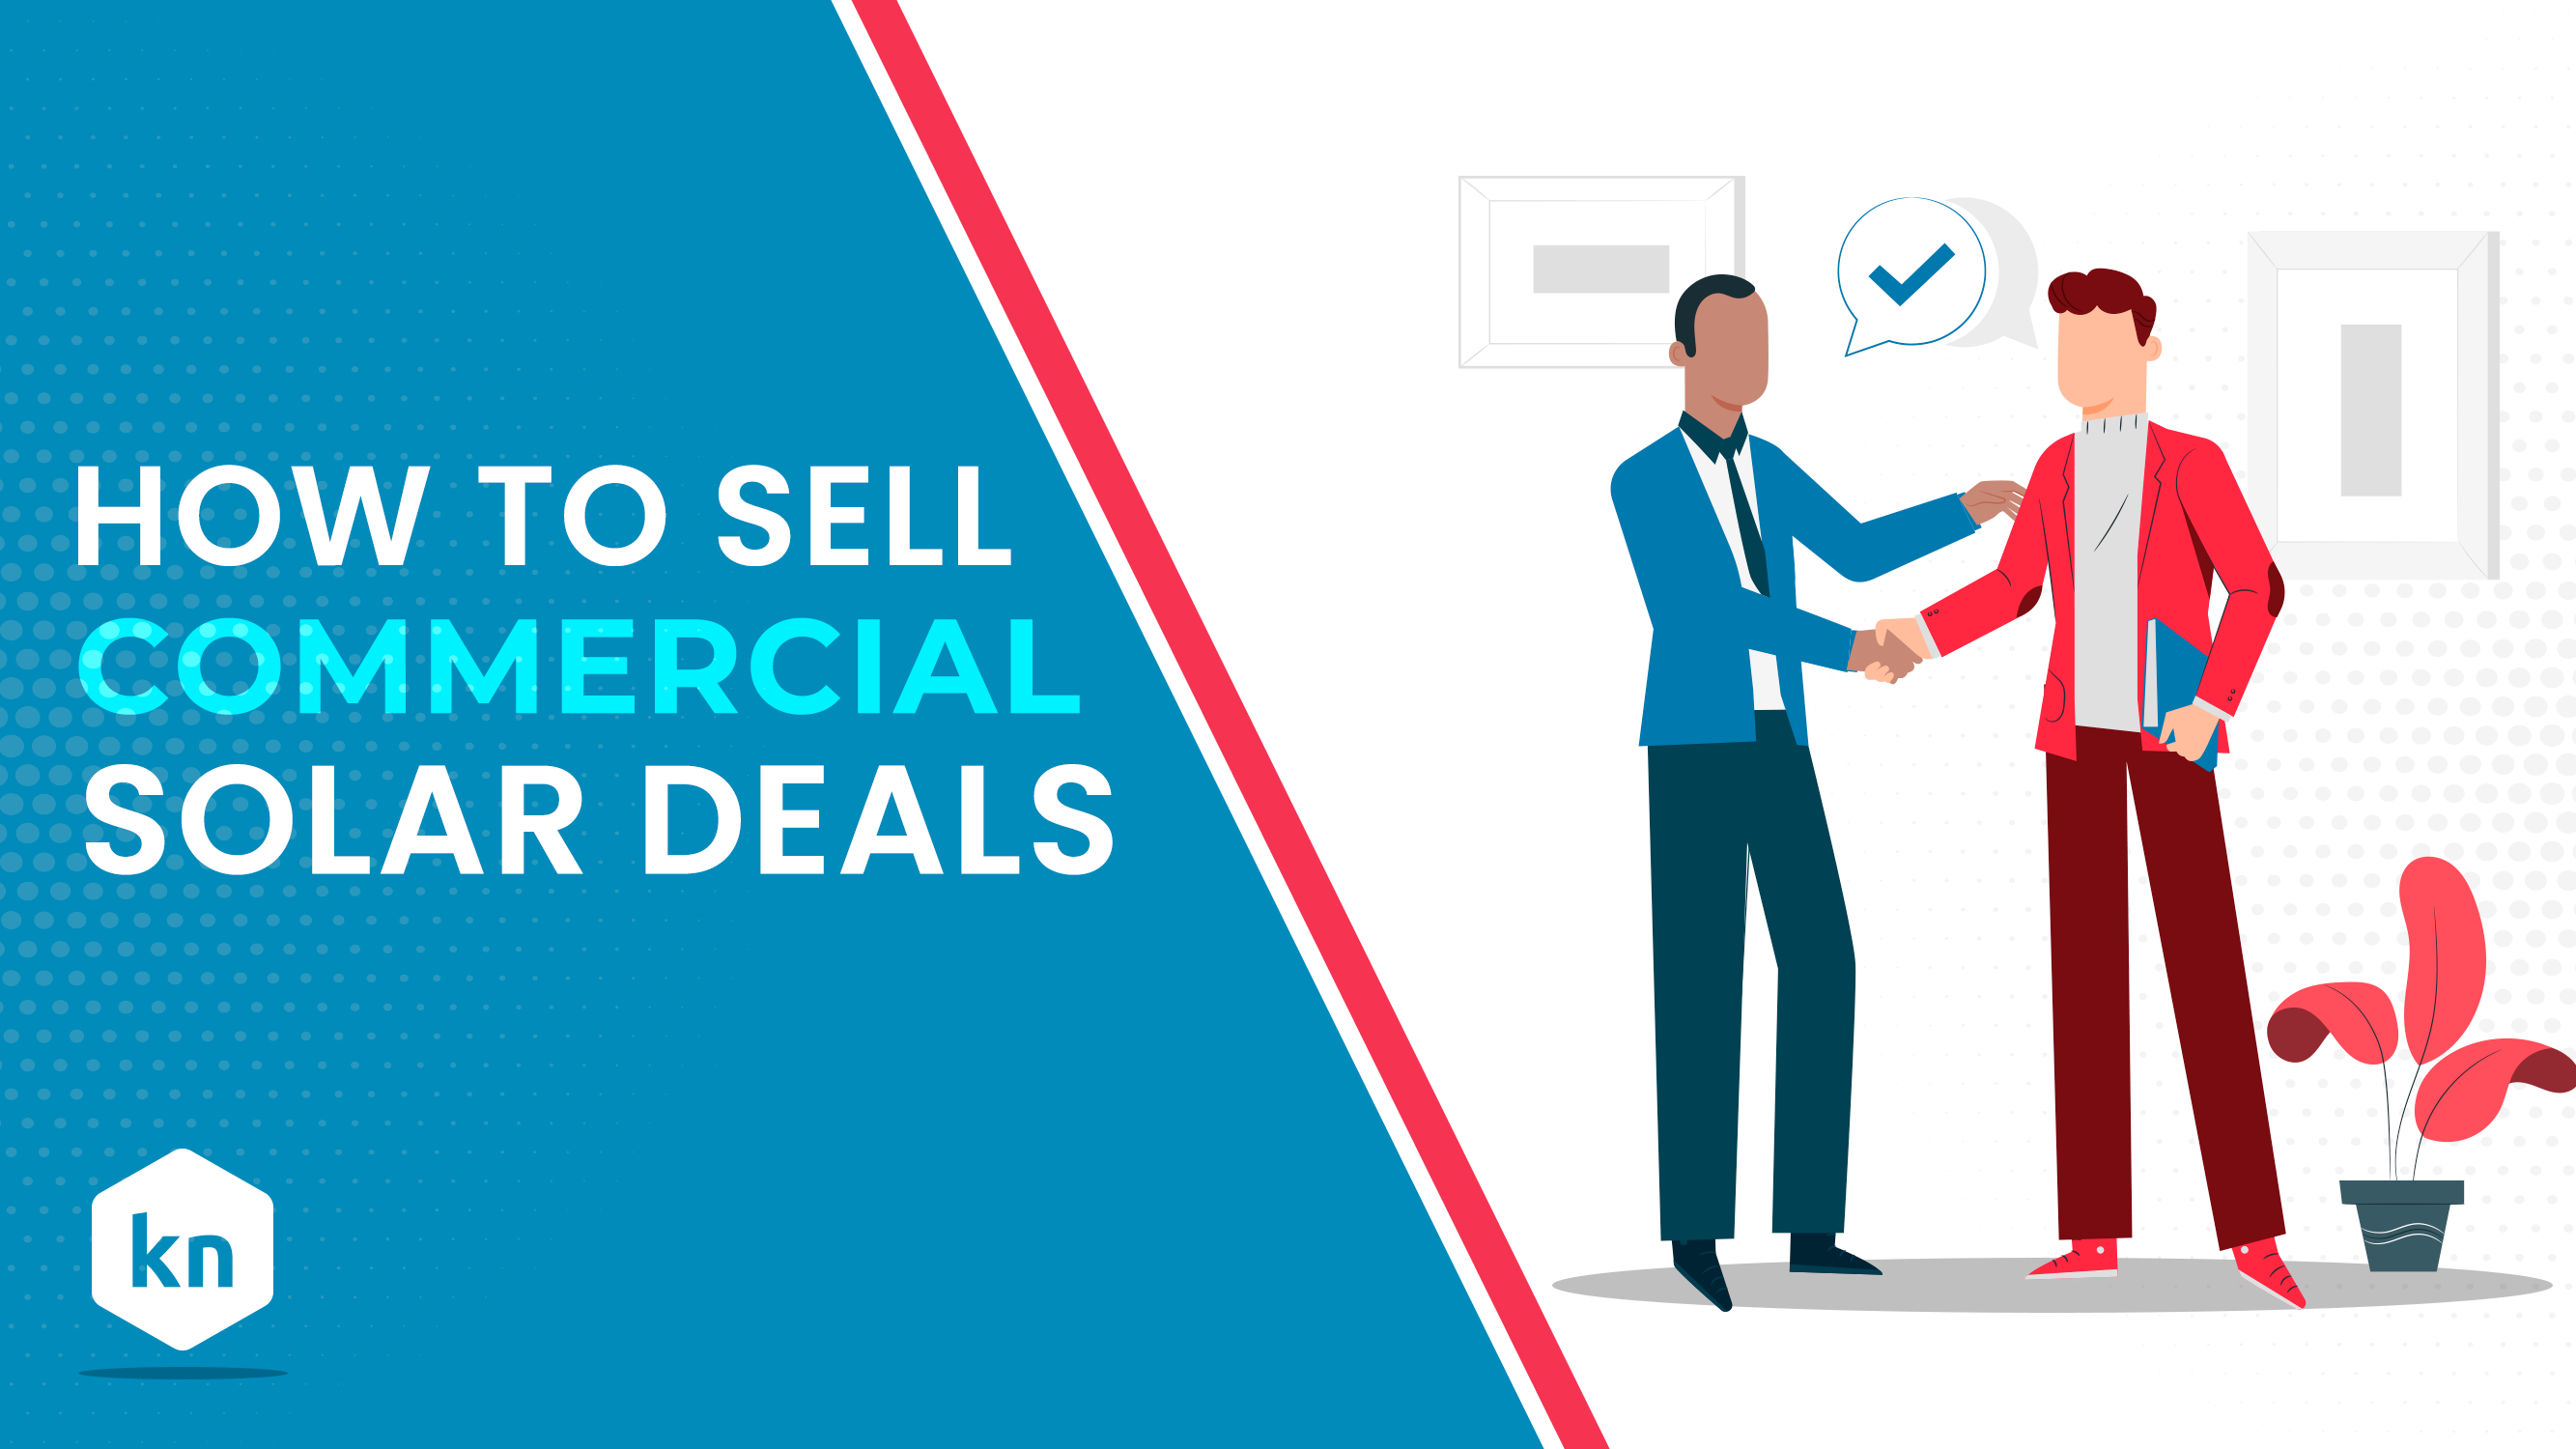 How To Sell Commercial Solar Deals